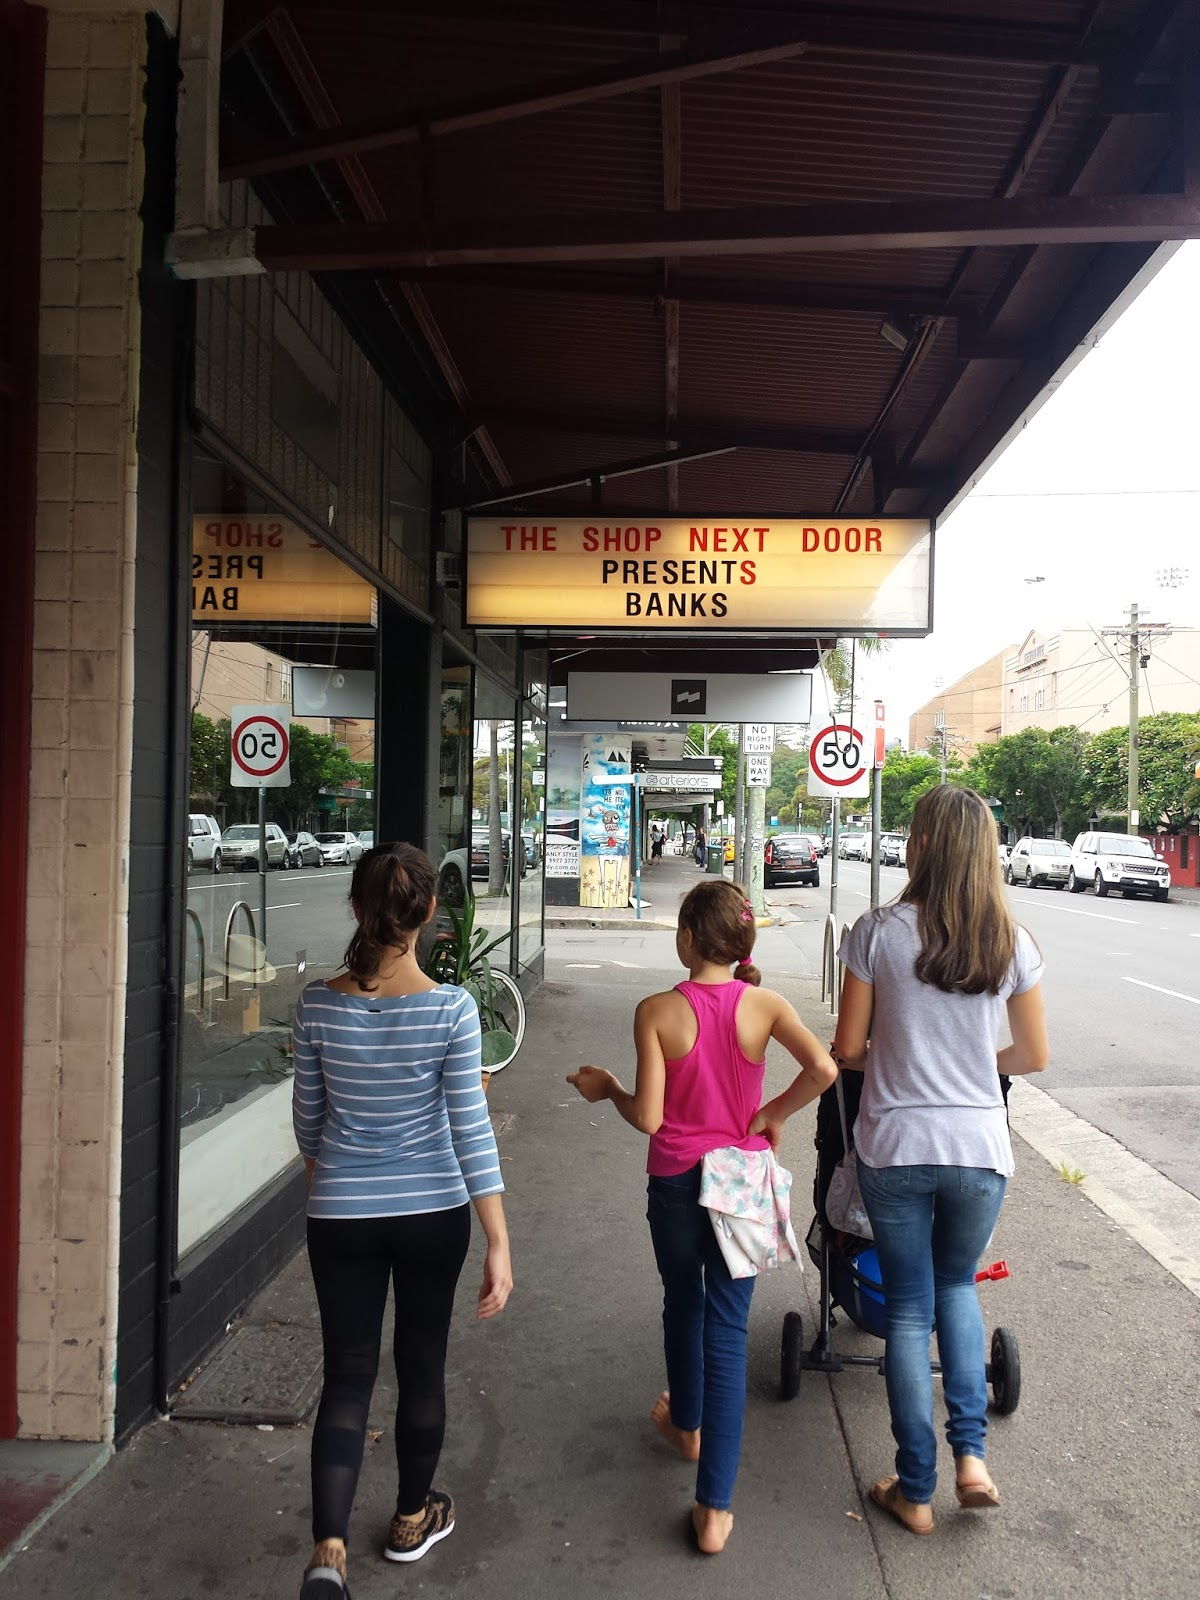 26-03-2016-australia-siebert-surfboards-03